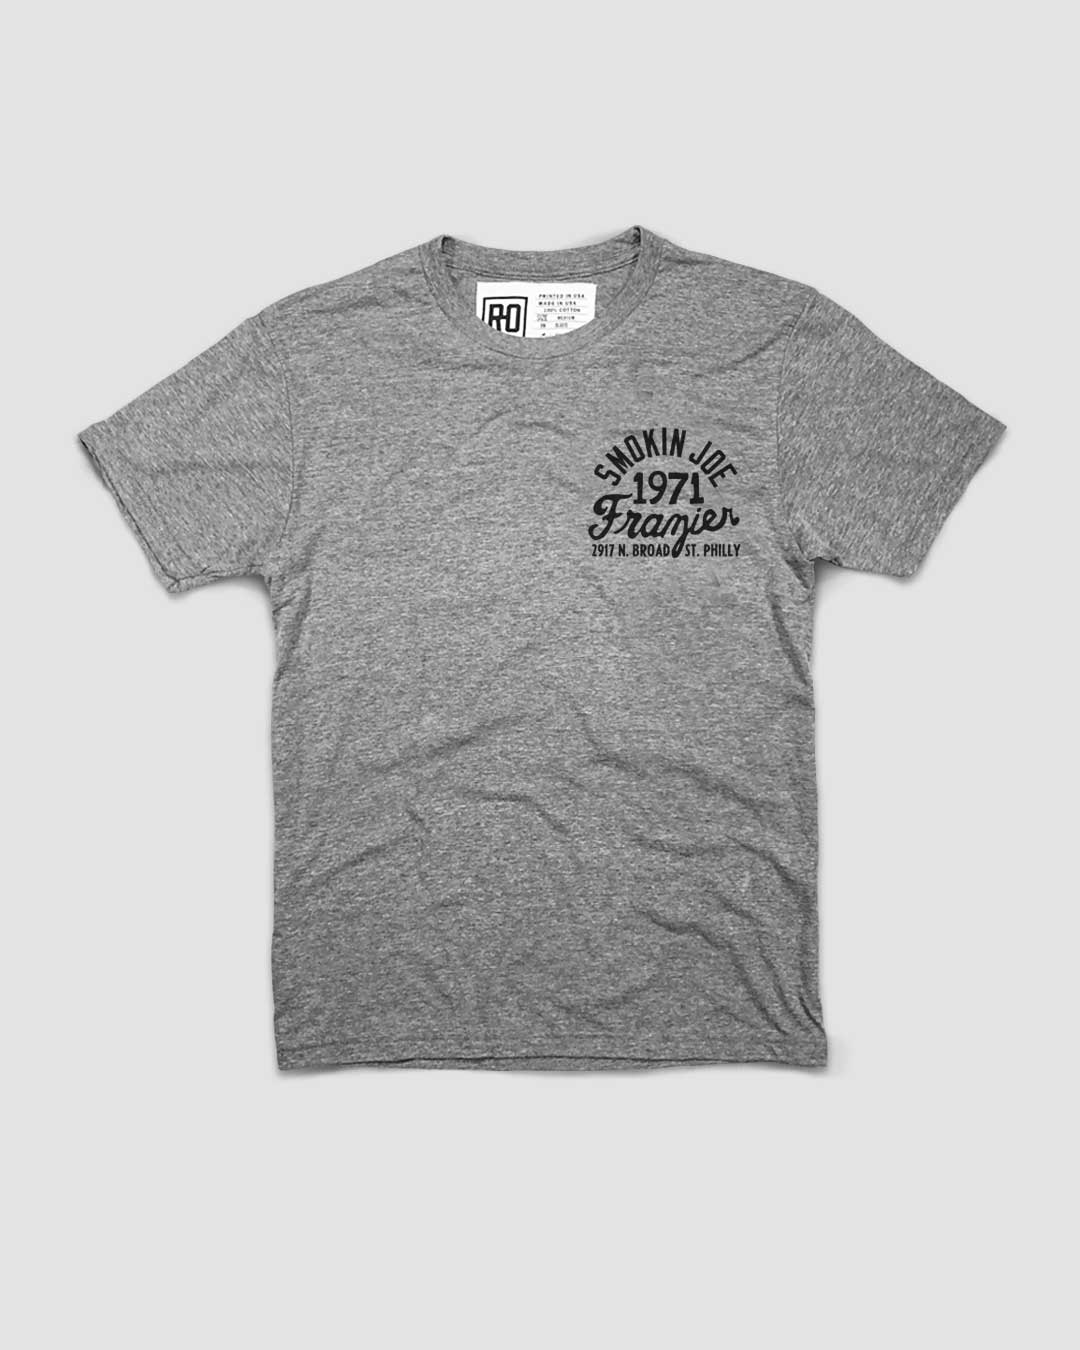 Smokin' Joe Frazier Philly Tee - Roots of Inc dba Roots of Fight